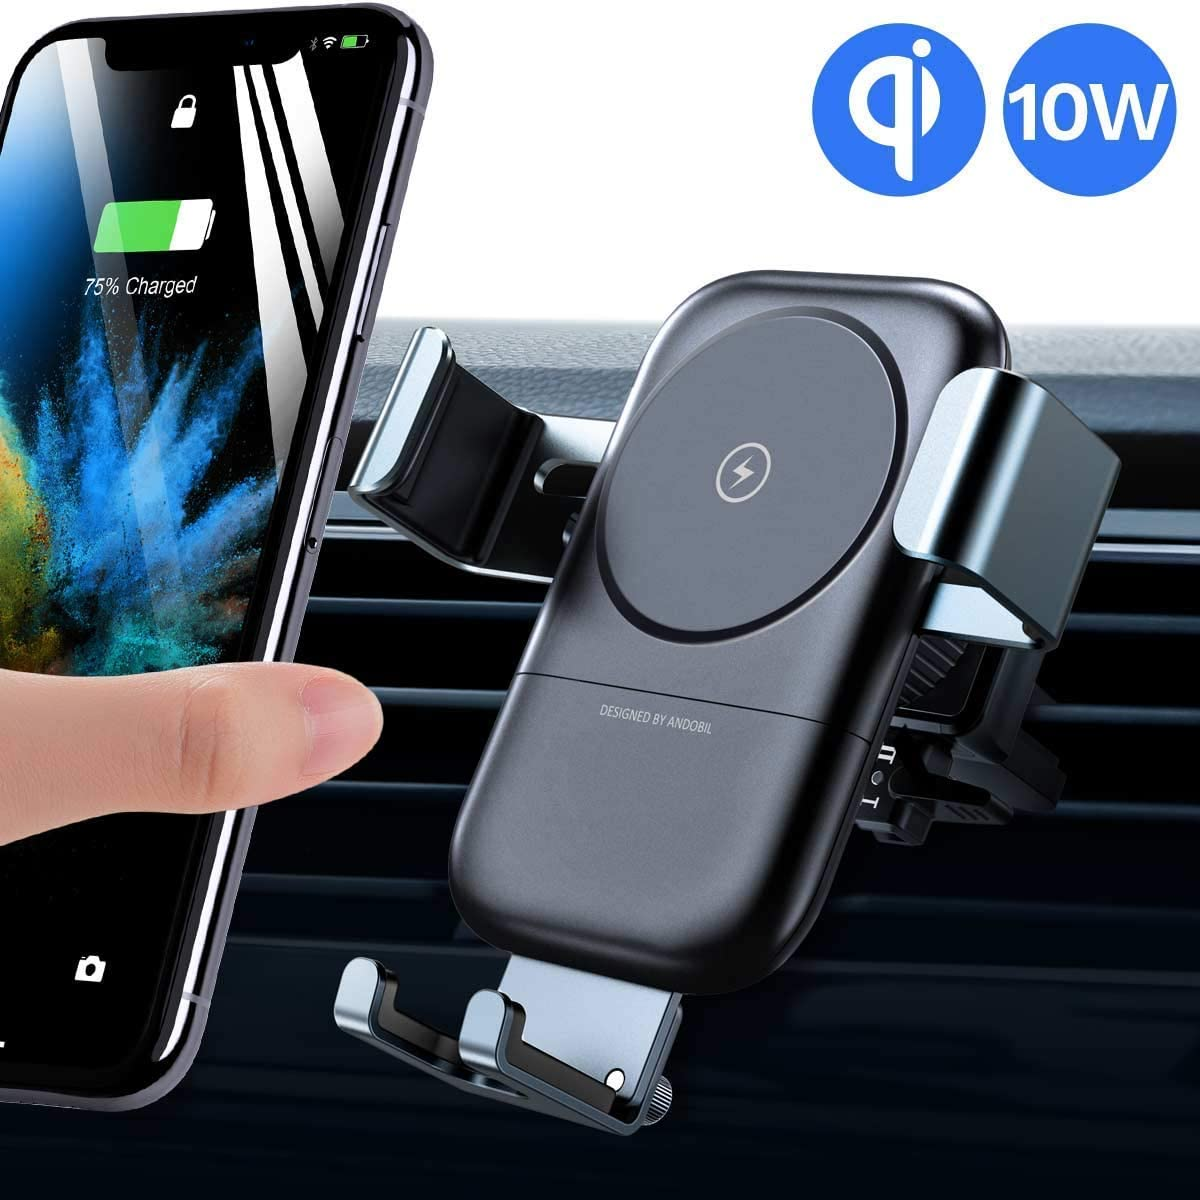 andobil Upgraded Wireless Car Charger Mount, Auto clamping 10W7.5W QI Fast Charging High Stability Adjustable Car Phone Holder 2 In 1 Air Vent for